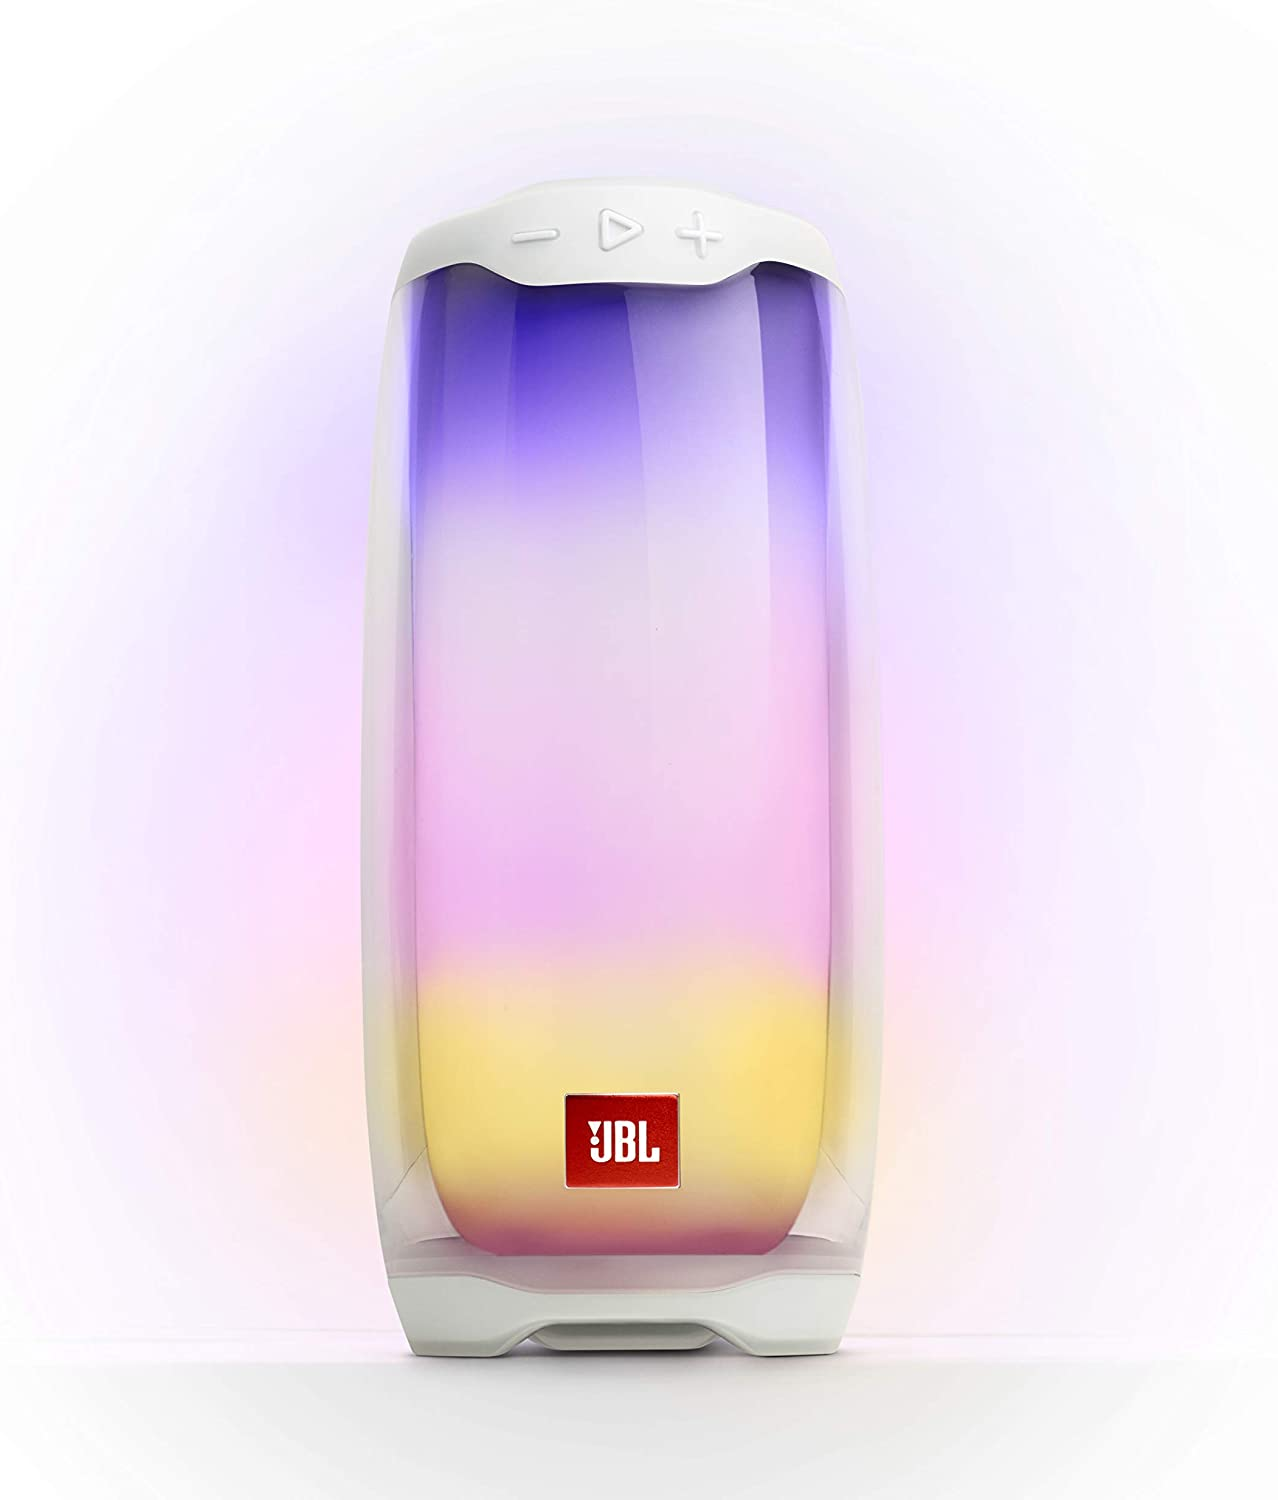 JBL Pulse 4 - Waterproof Portable Bluetooth Speaker with Light Show - White